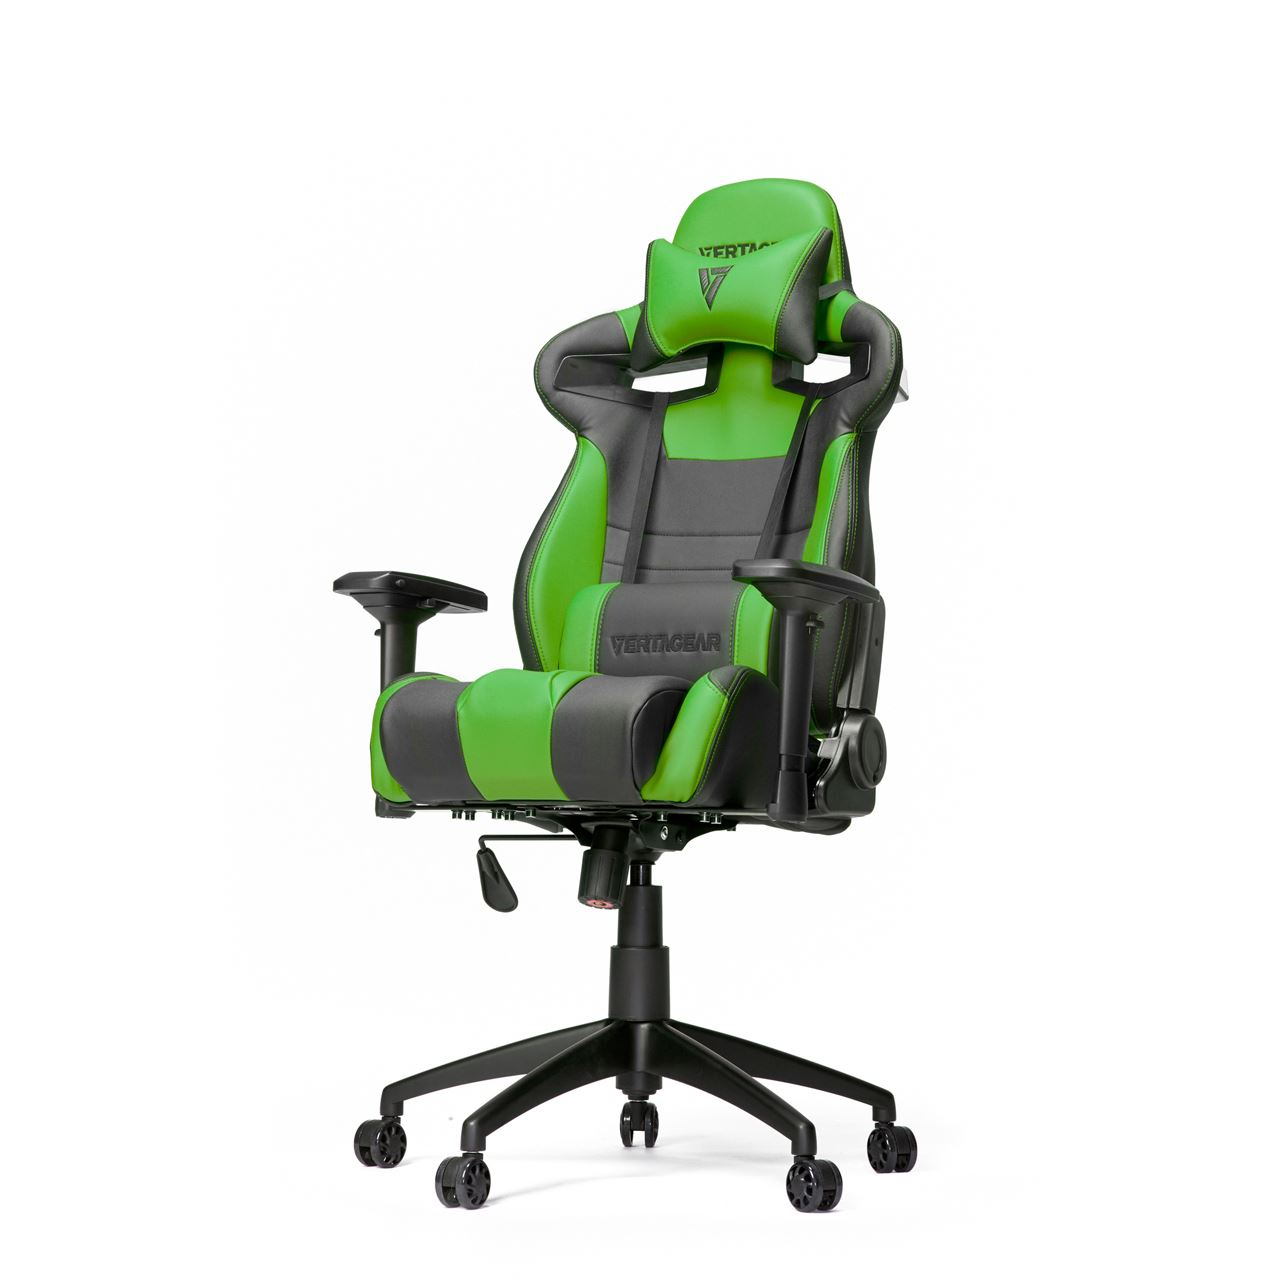 Seat Grün Vertagear Racing Series Sl4000 Gaming Chair Schwarz Grün